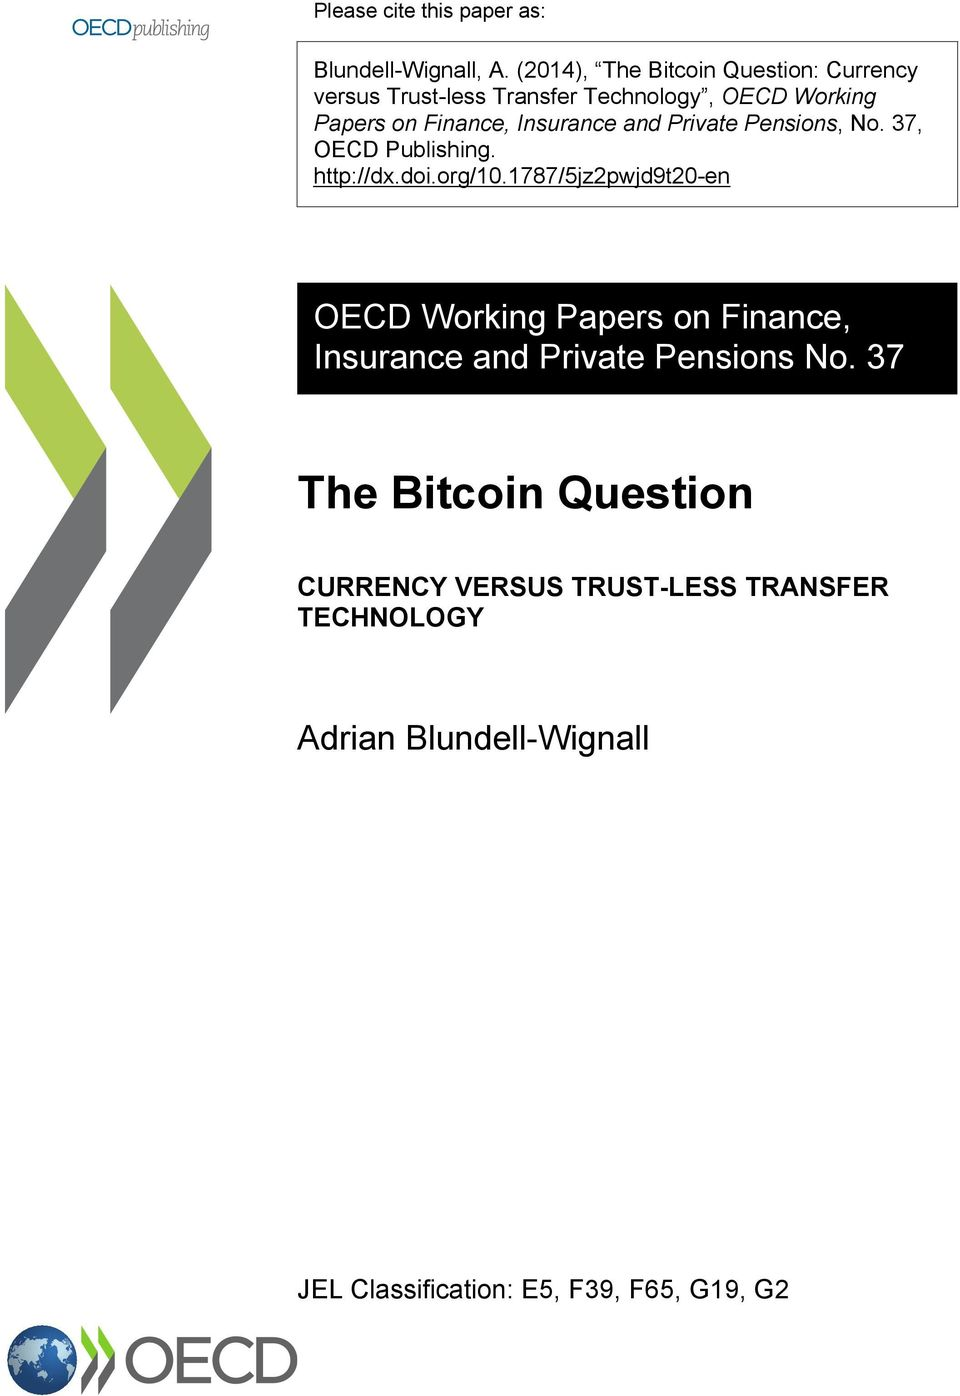 Insurance and Private Pensions, No. 37, OECD Publishing. http://dx.doi.org/10.